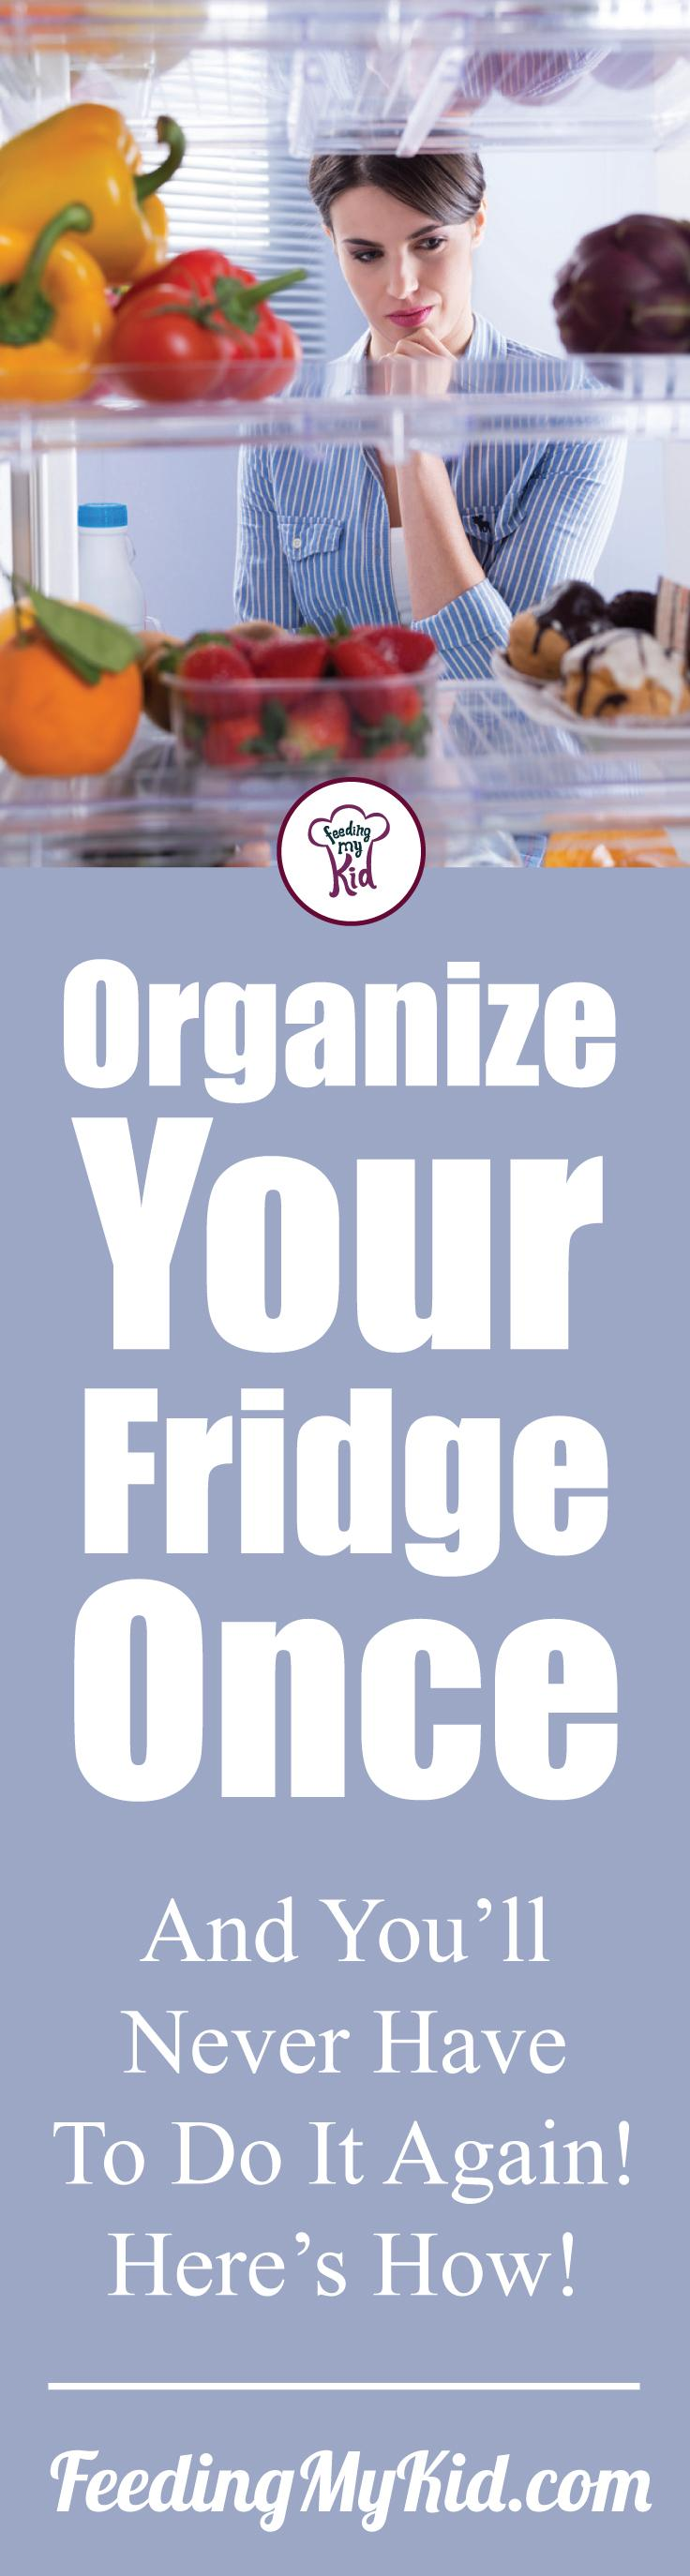 Want to learn how to organize your fridge? Watch these videos on refrigerator organization and you'll be a pro in no time! Feeding My Kid is a filled with all the information you need about how to raise your kids, from healthy tips to nutritious recipes. #FeedingMyKid #refrigeratororganization #organizationtips